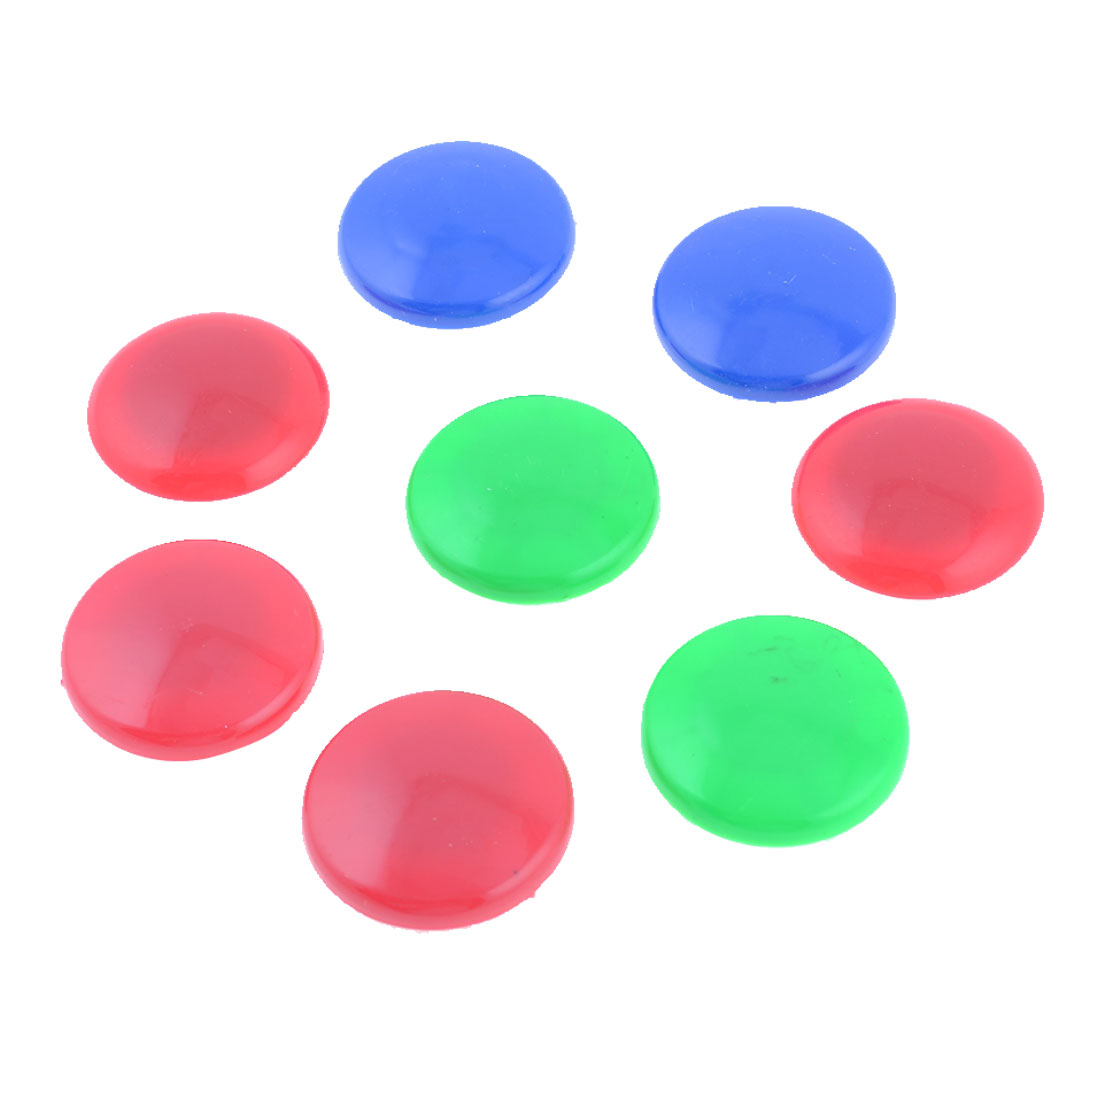 8 Pcs Assorted Color Round Shaped Magnetic Fridge Memo Paper Holder